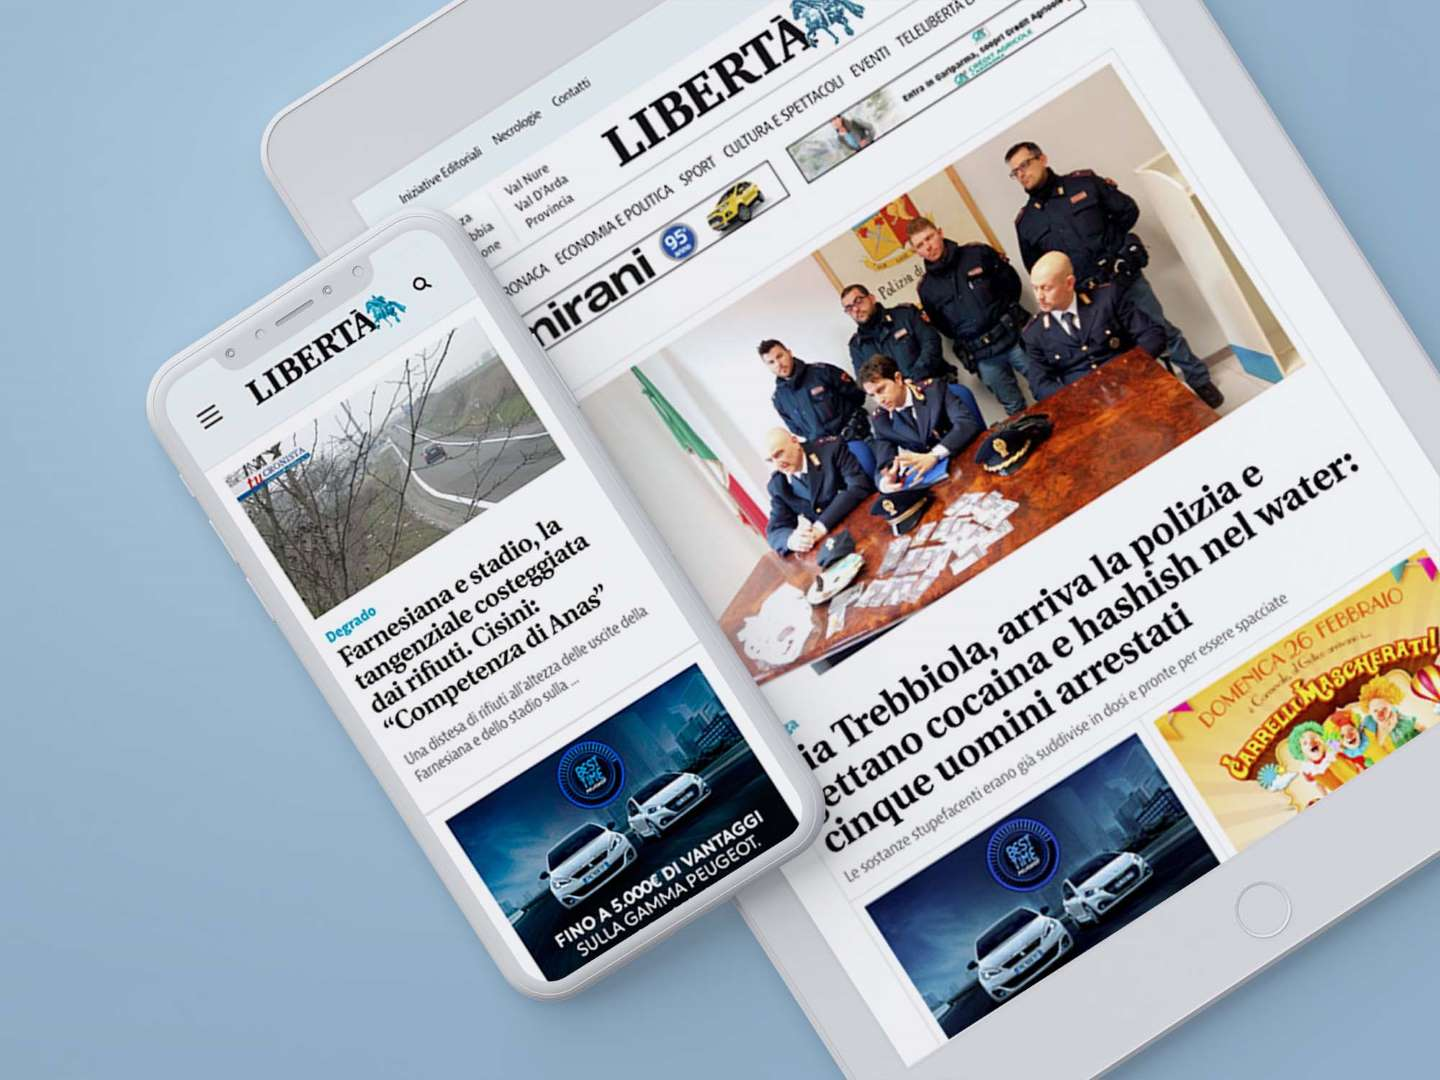 Libertà_Web_08_Wenceslau_News_Design (1)